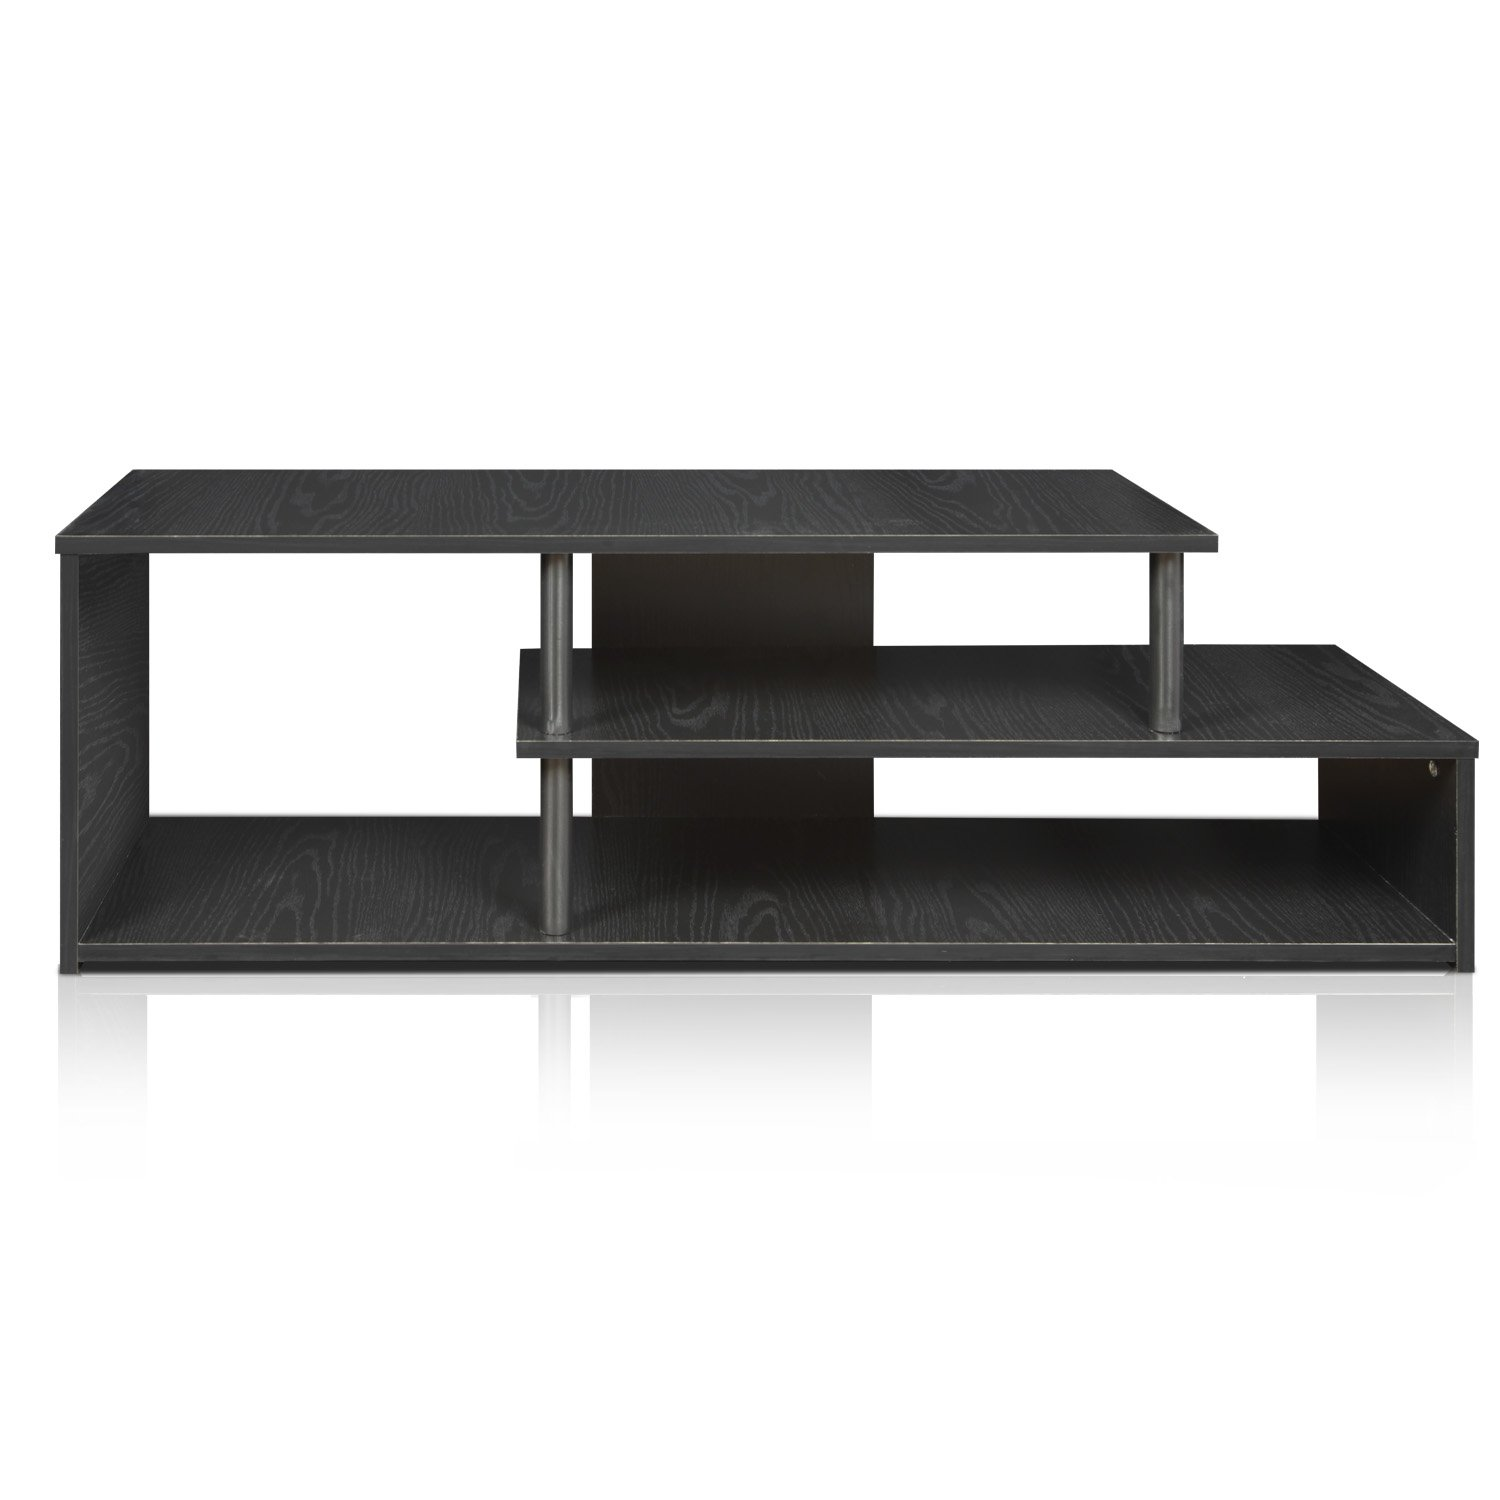 Furinno Econ Low Rise TV Stand, Black/Black by Furinno